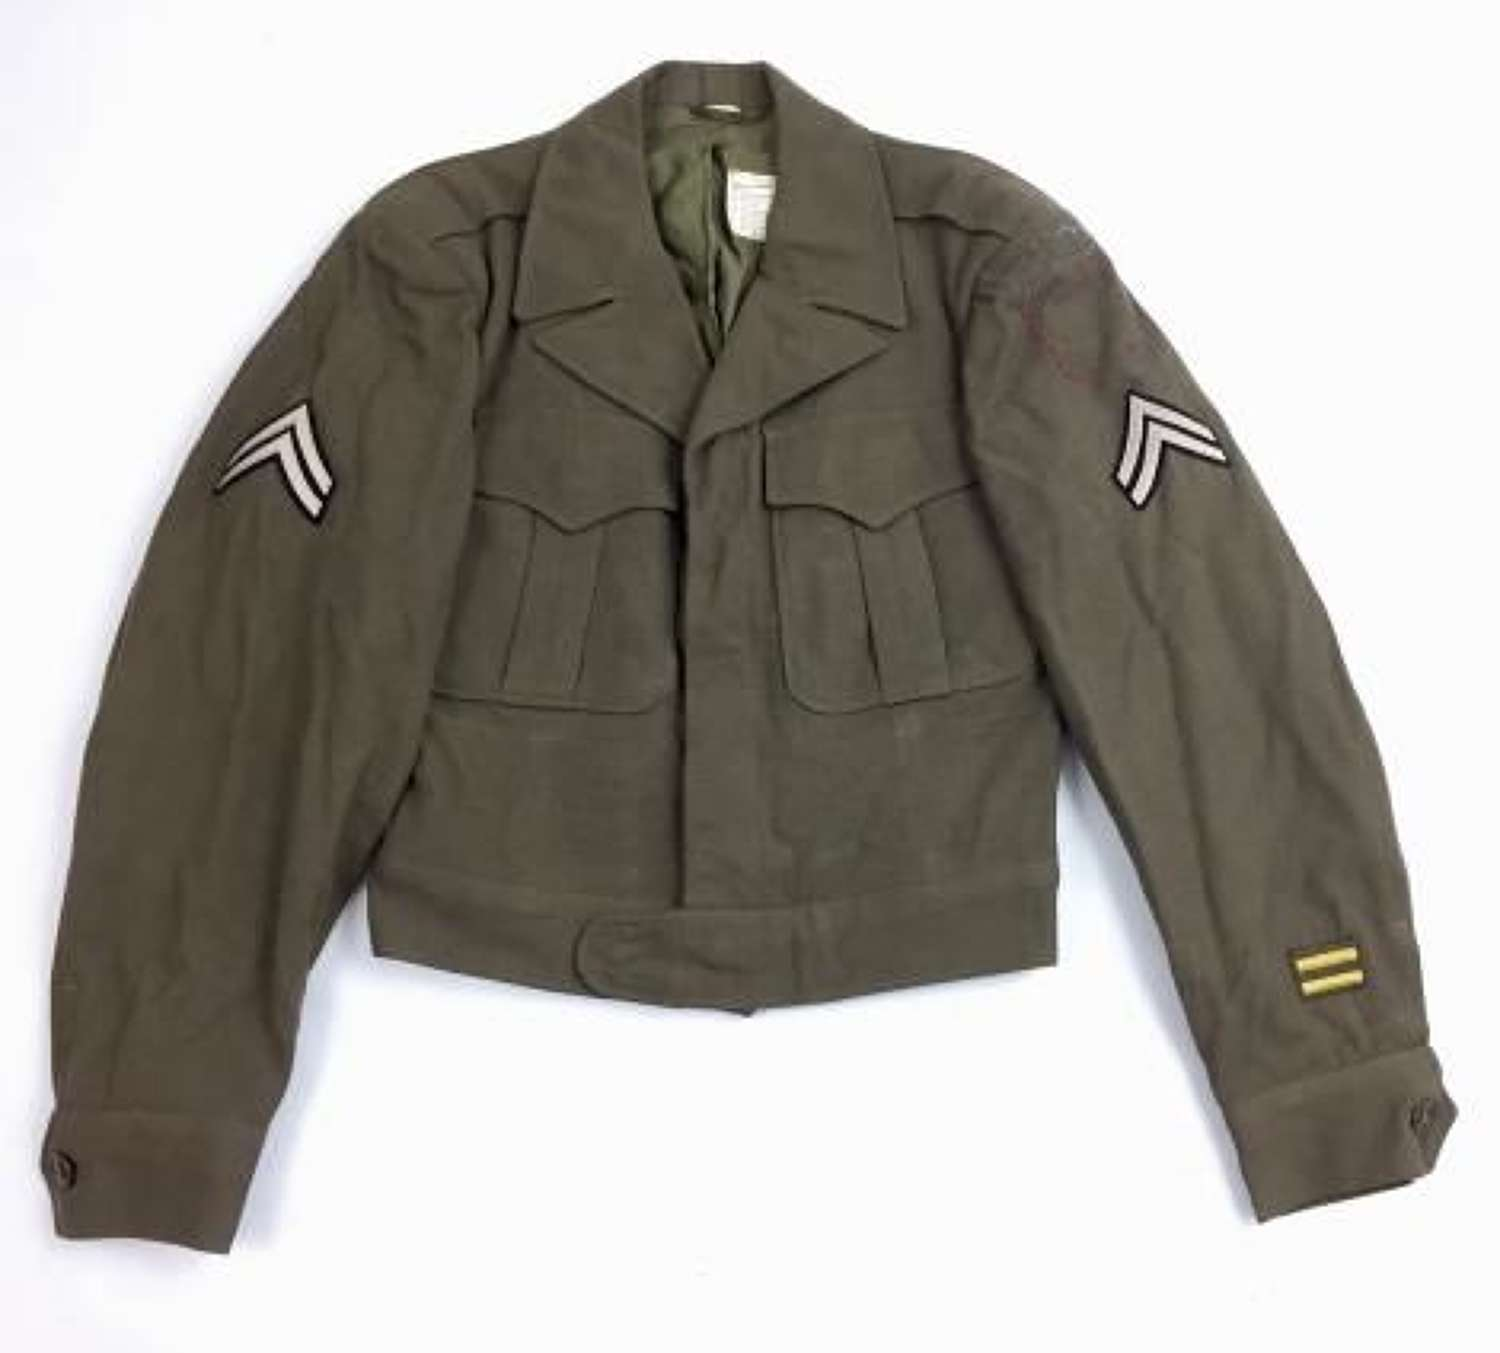 Original 1945 Dated US 'Jacket, Field, Wool, O.D - Size 34